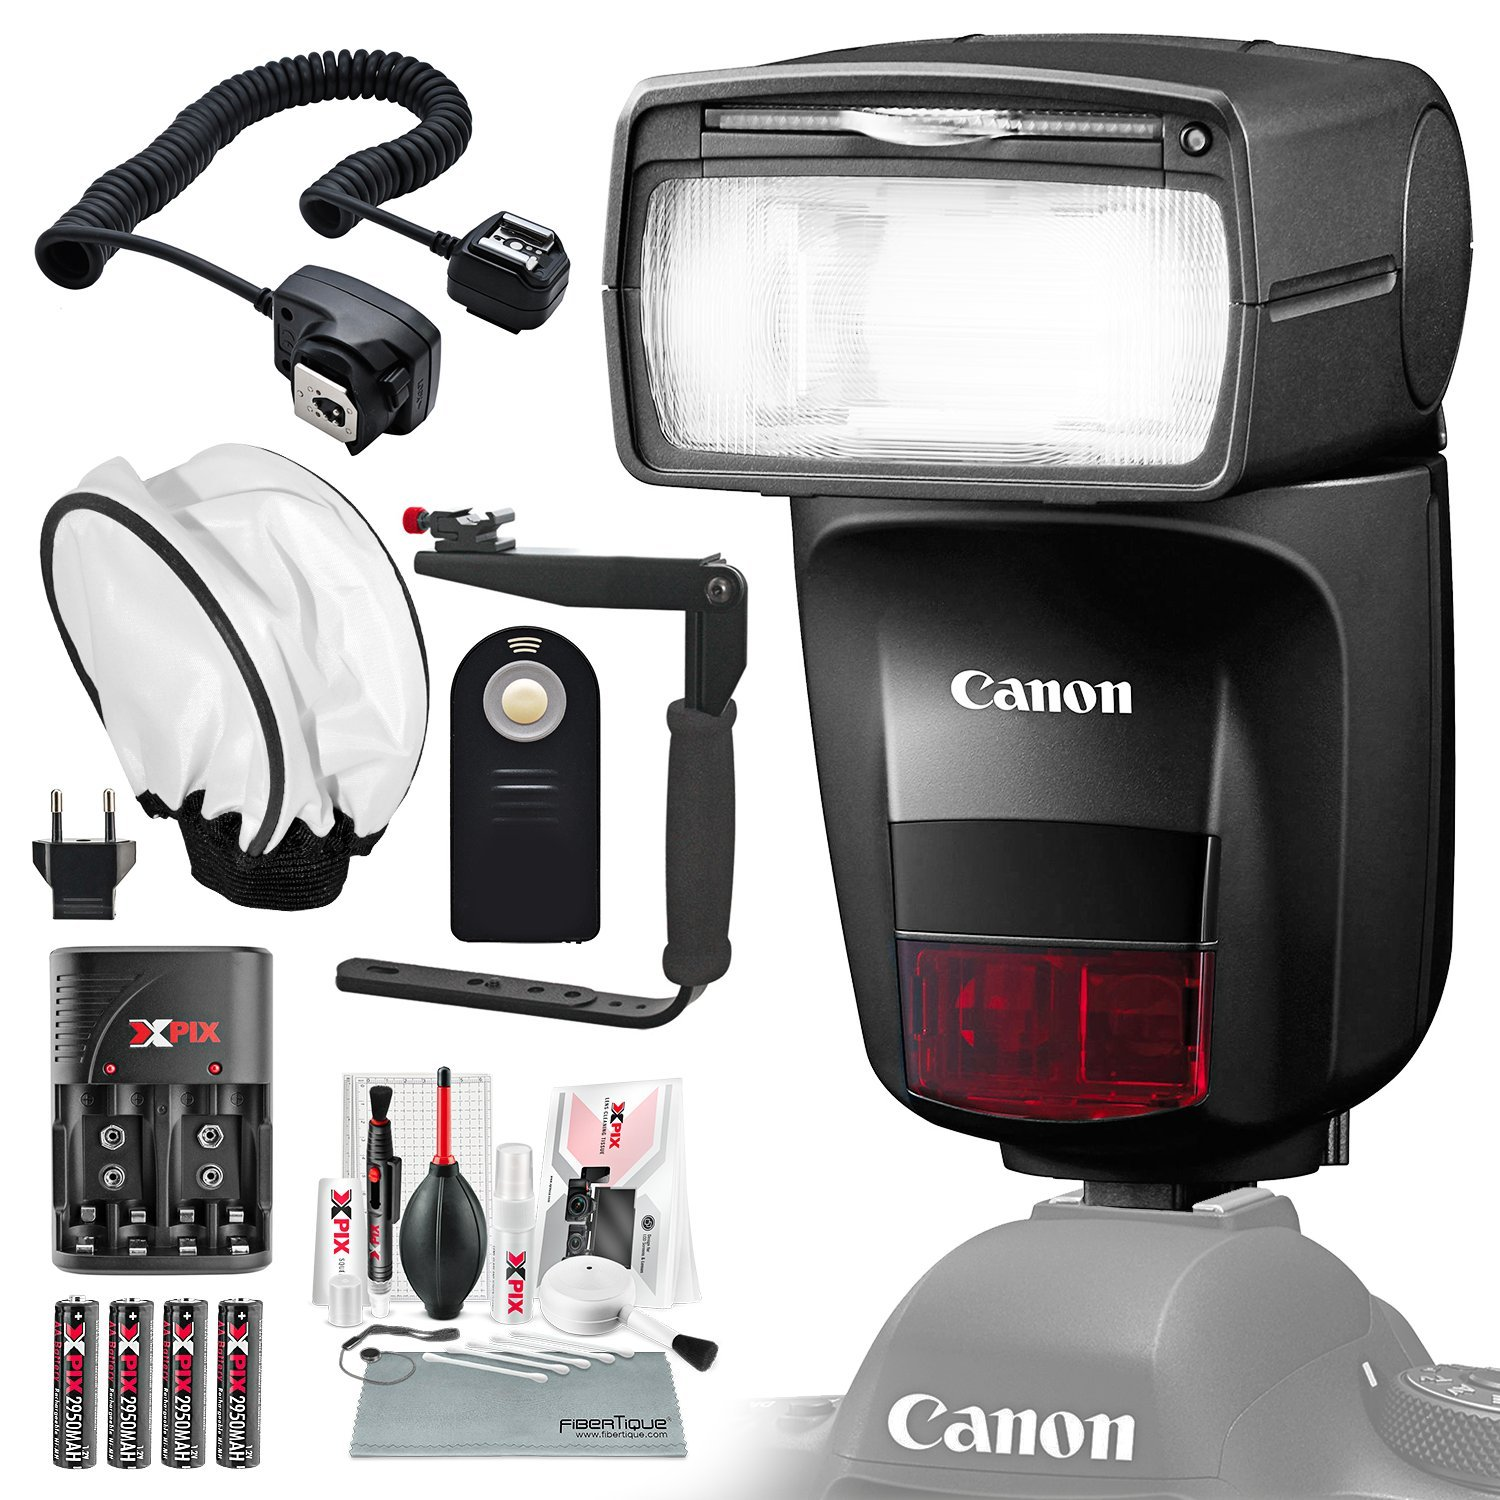 Canon Speedlite 470EX-AI Flash with Diffuser, Batteries & Charger Kit, Xpix Cleaning Accessories, and Basic Photo Bundle by Canon (Image #1)